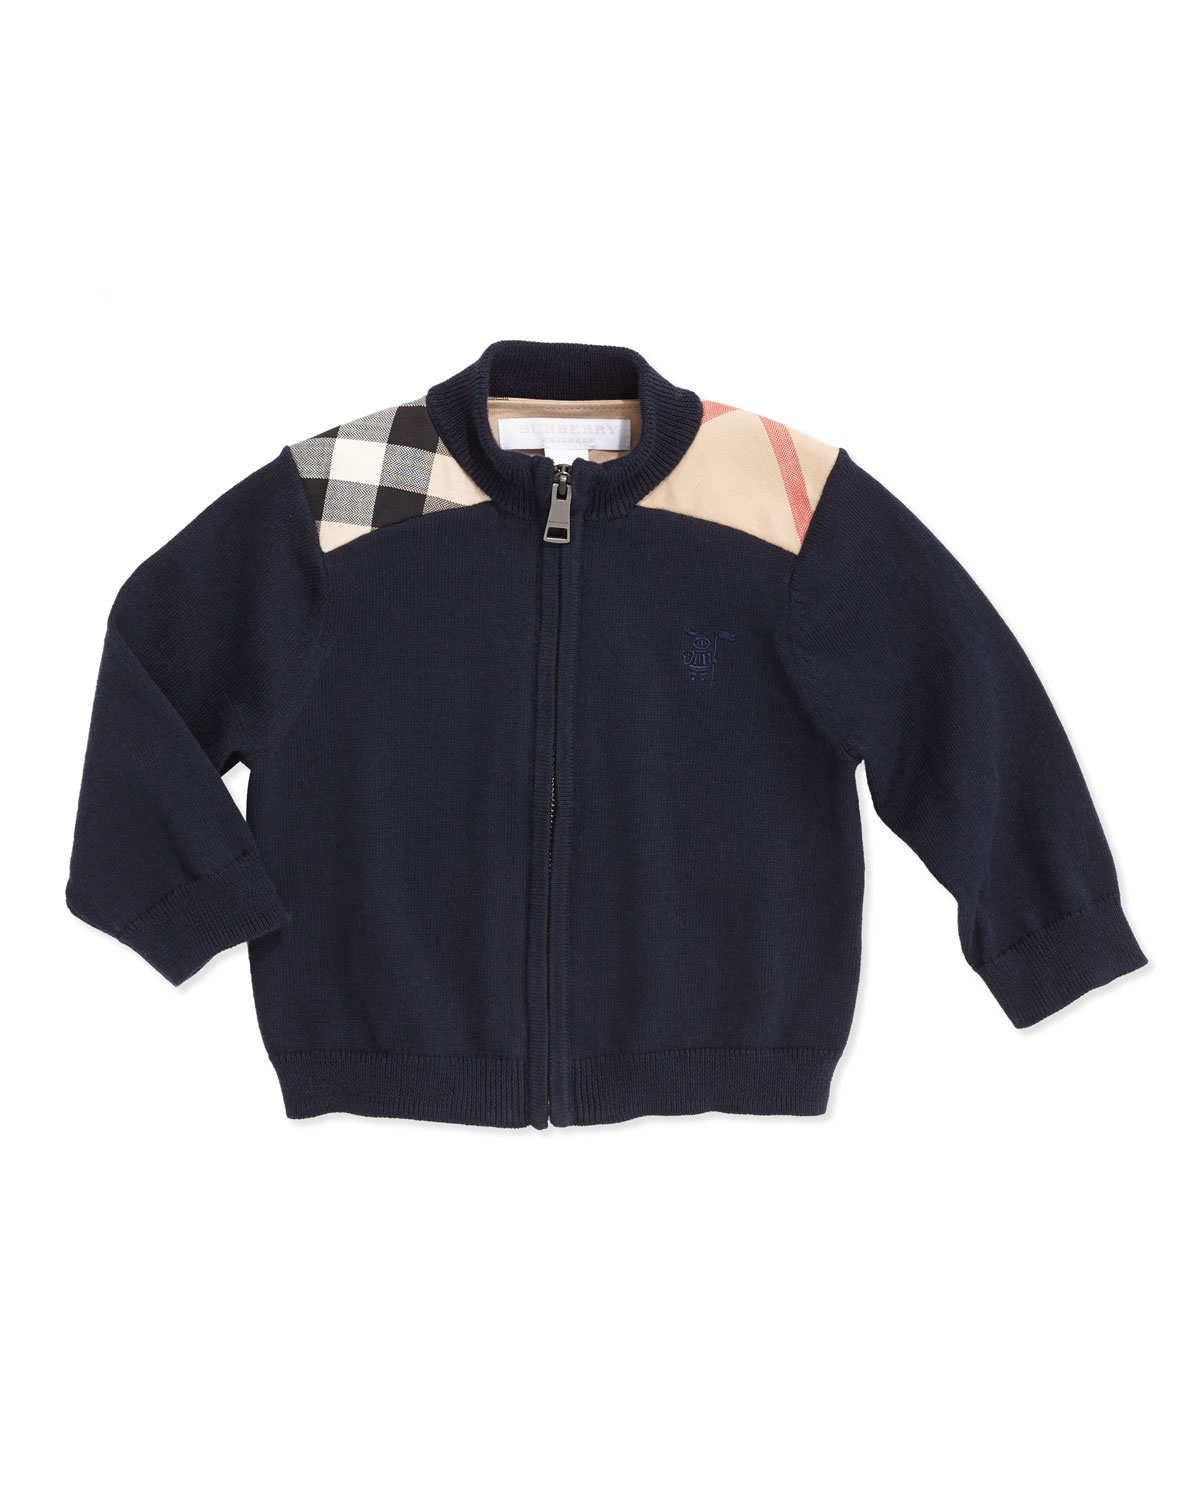 Christian Woven Check-Shoulder Zip Cardigan, Navy, 6-18 Months